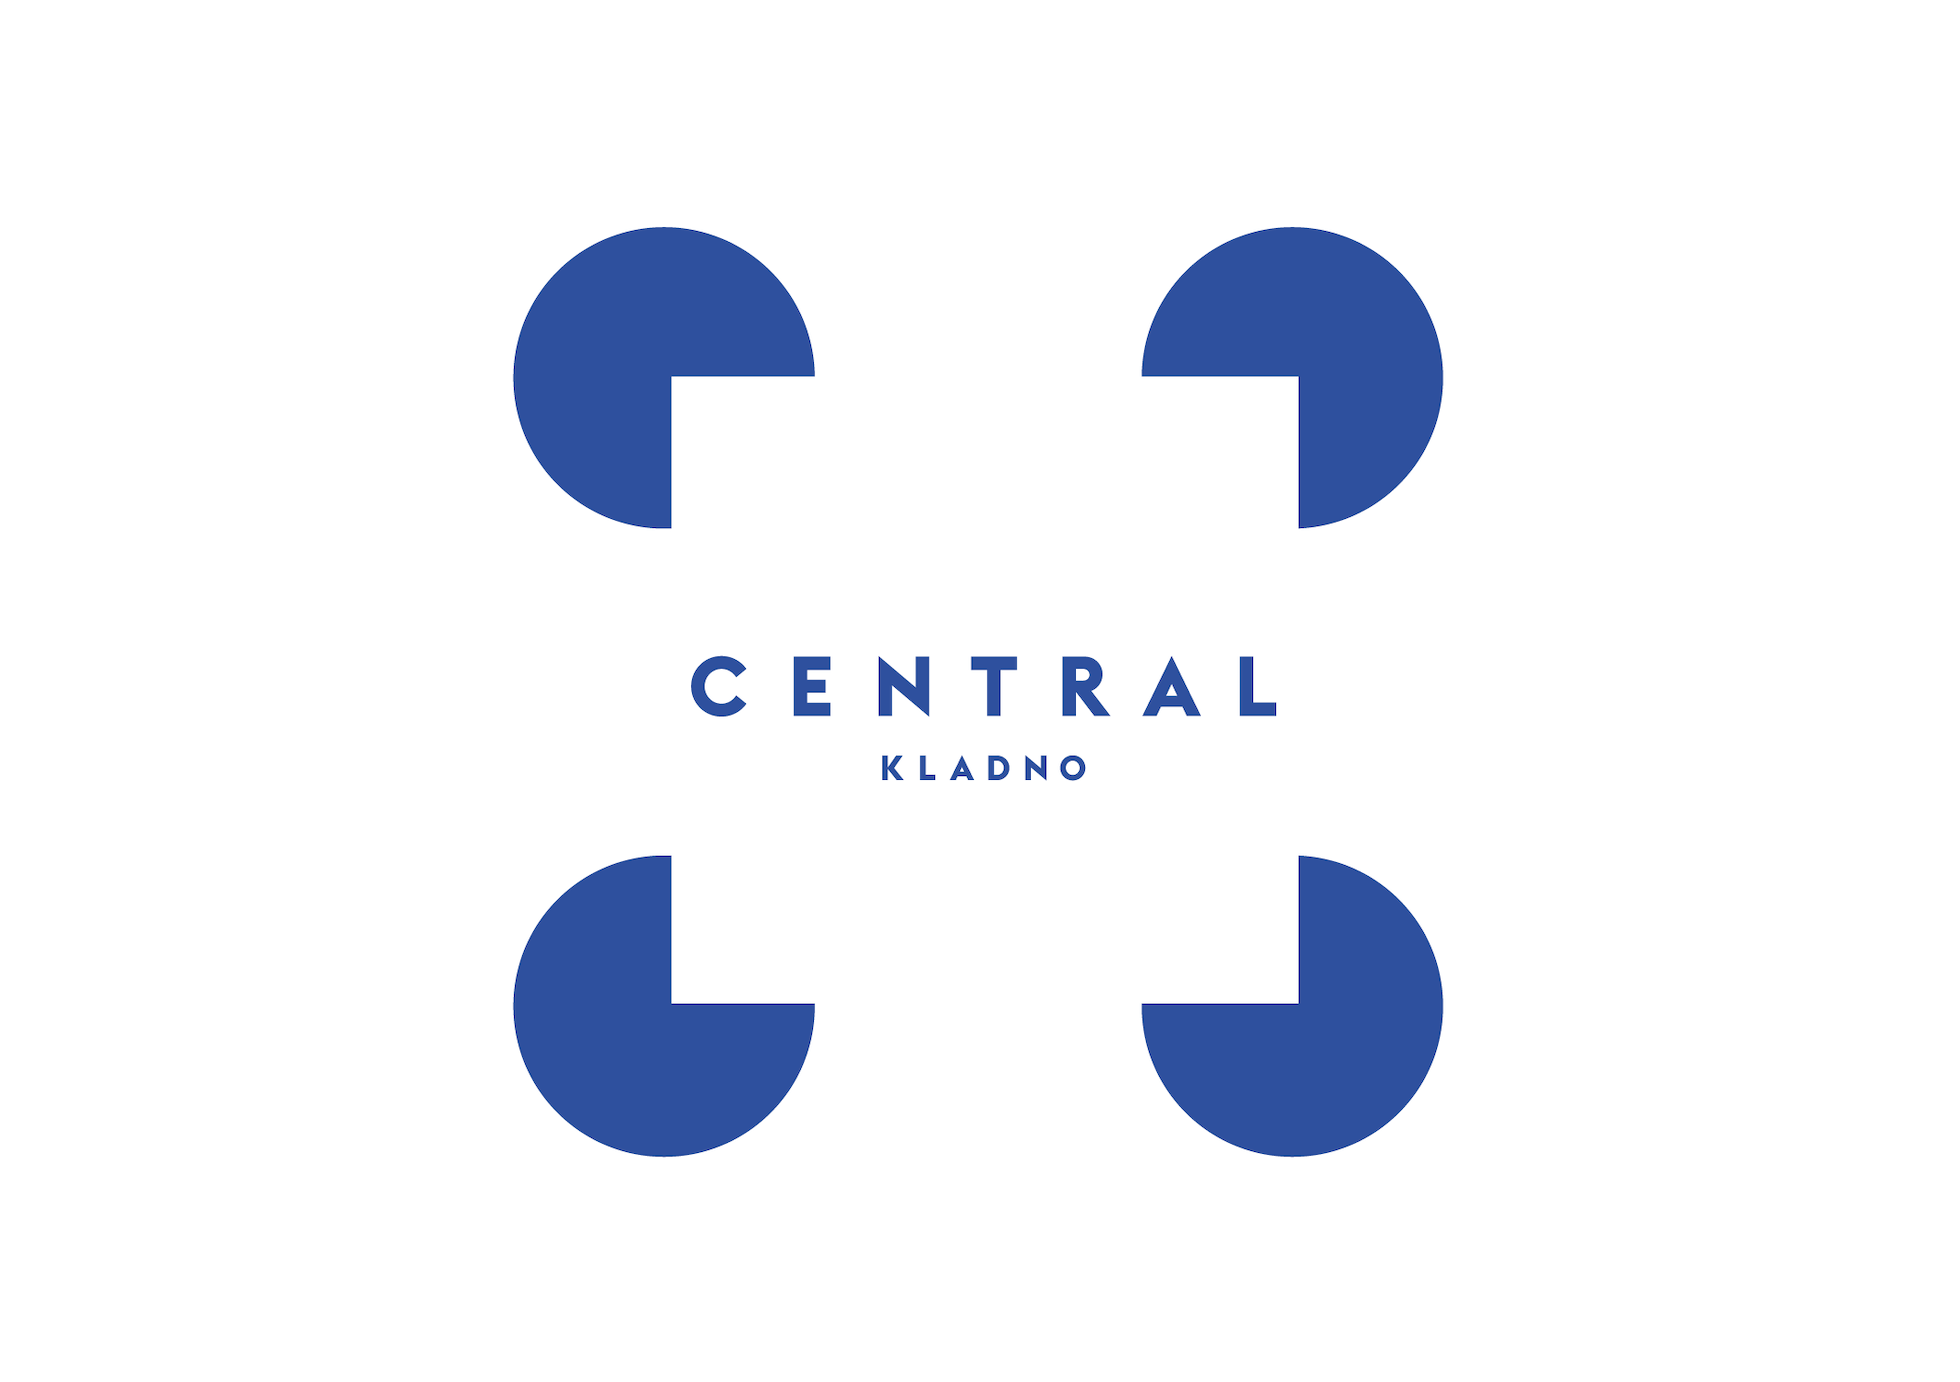 Central Kladno logo